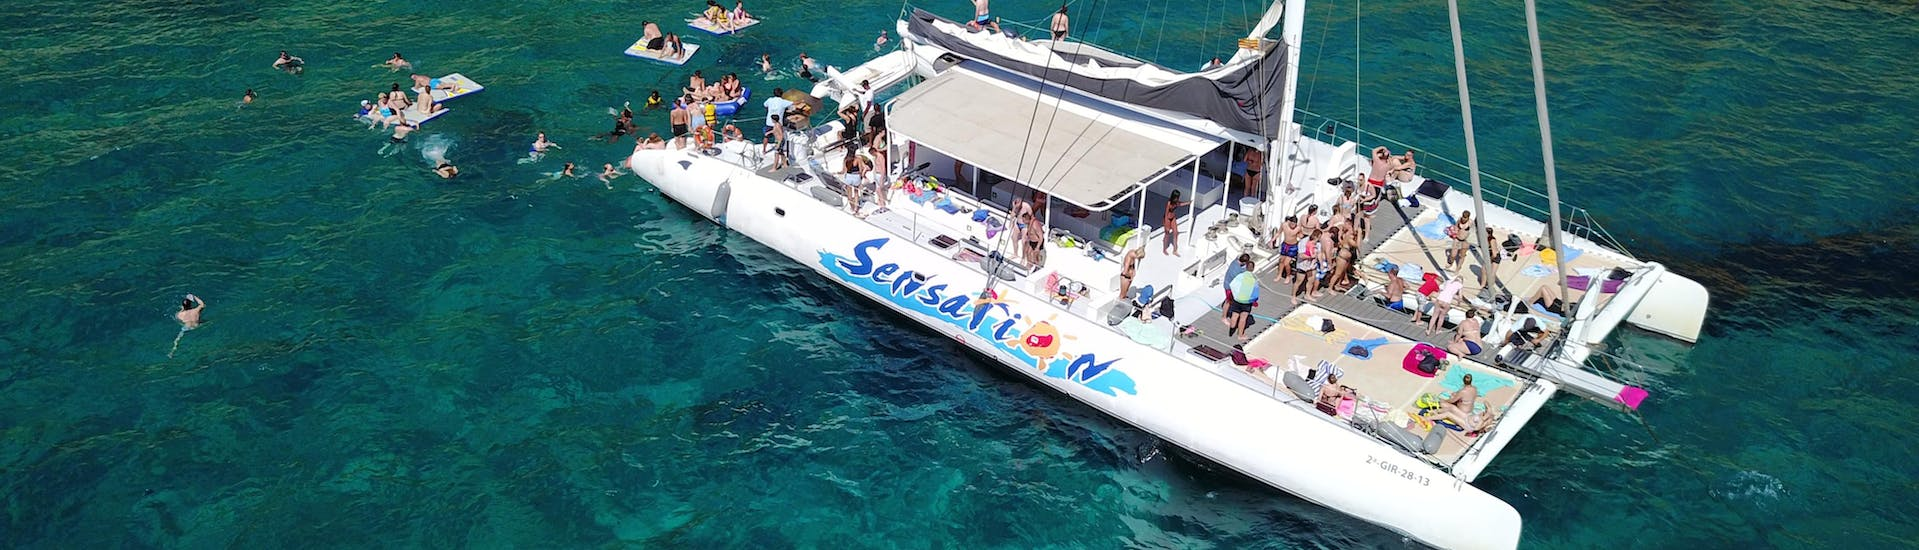 Boat trip with Catamaran Sensations along the Costa Brava shore with swimming and snorkeling.